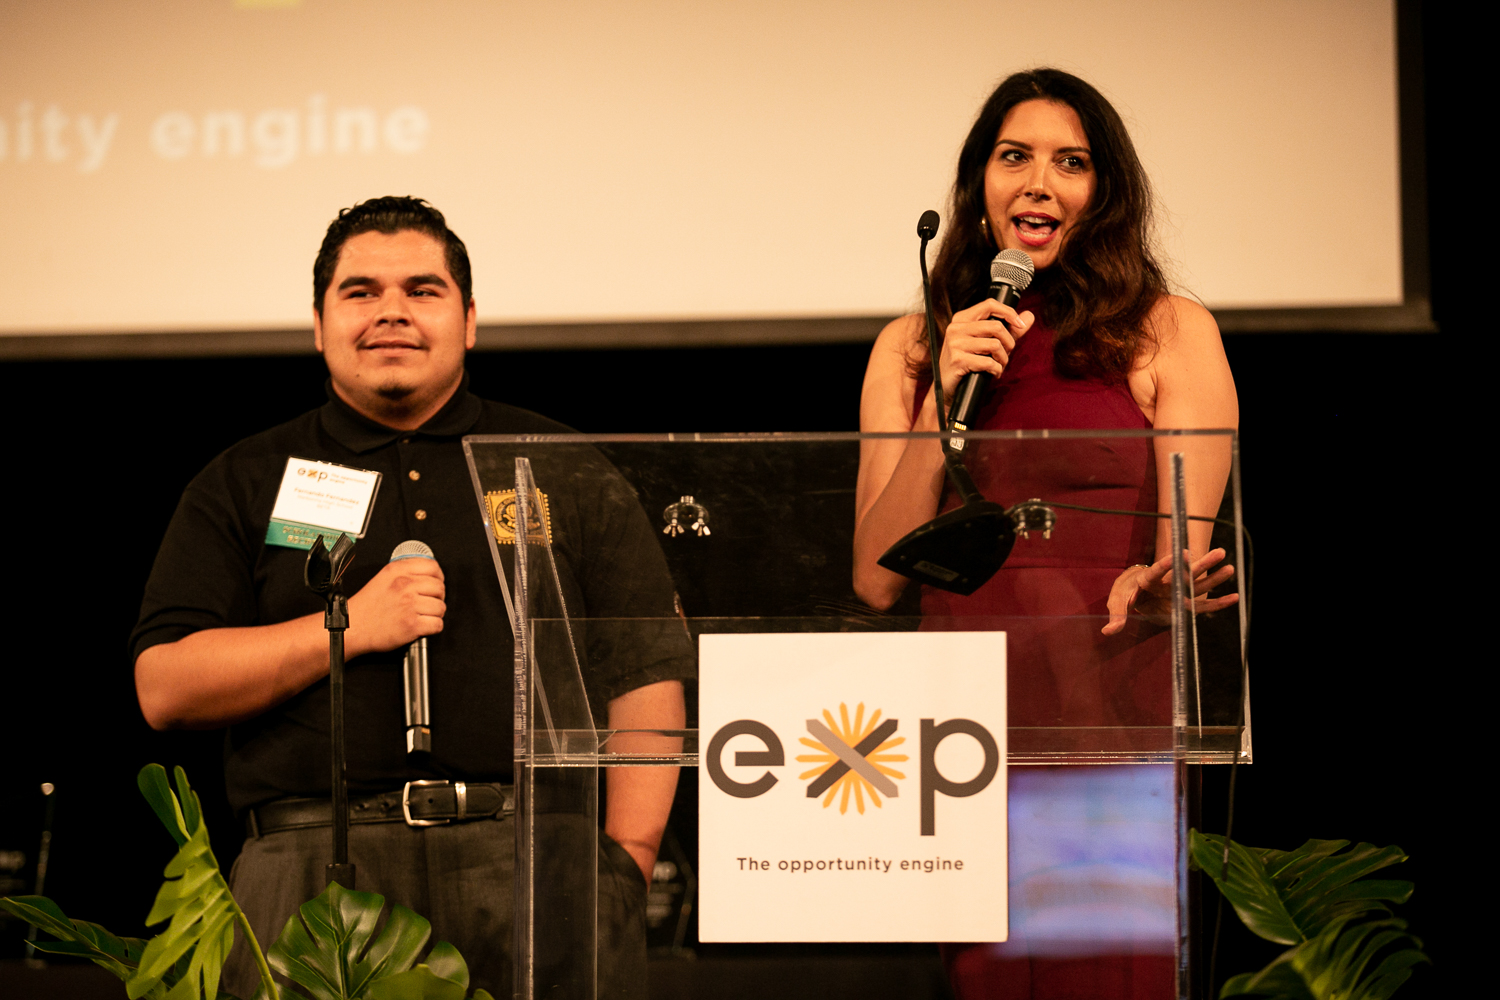 """By having confidence and knowing that I can do it; I can do anything!"" - - Fernando, on hosting EXP's Oceans of Opportunity with TV personality Viviana Vigil"